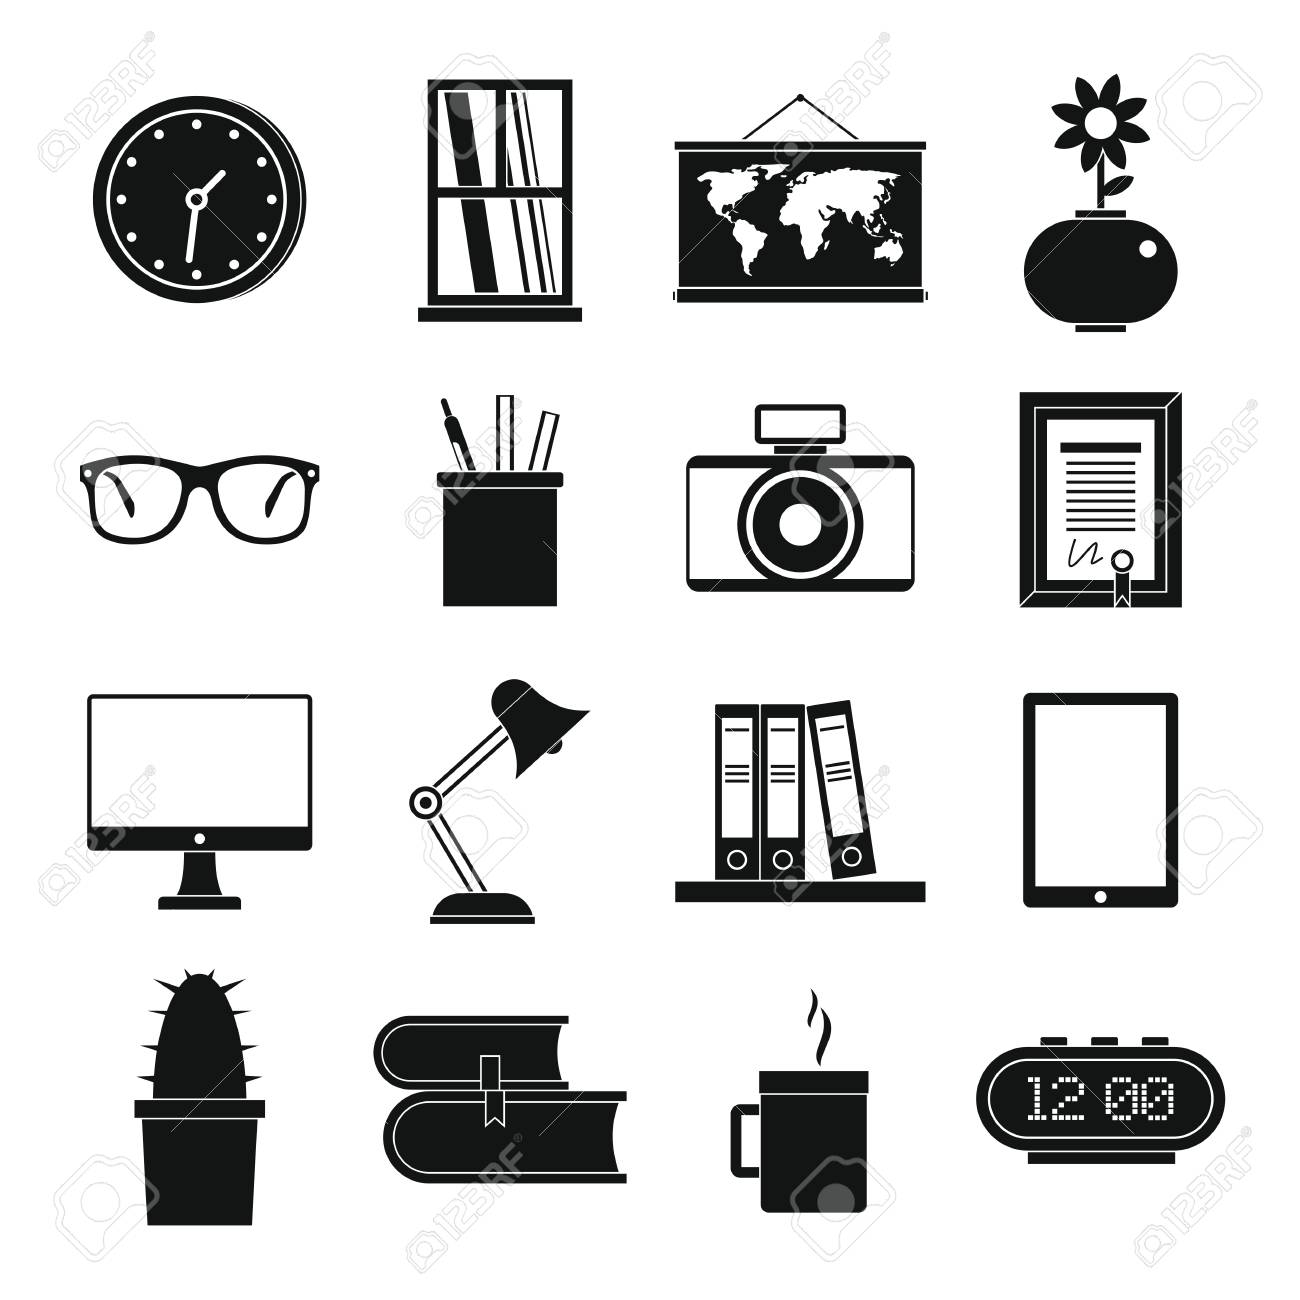 Set Flat Black Silhouette Office And House Items Elements For